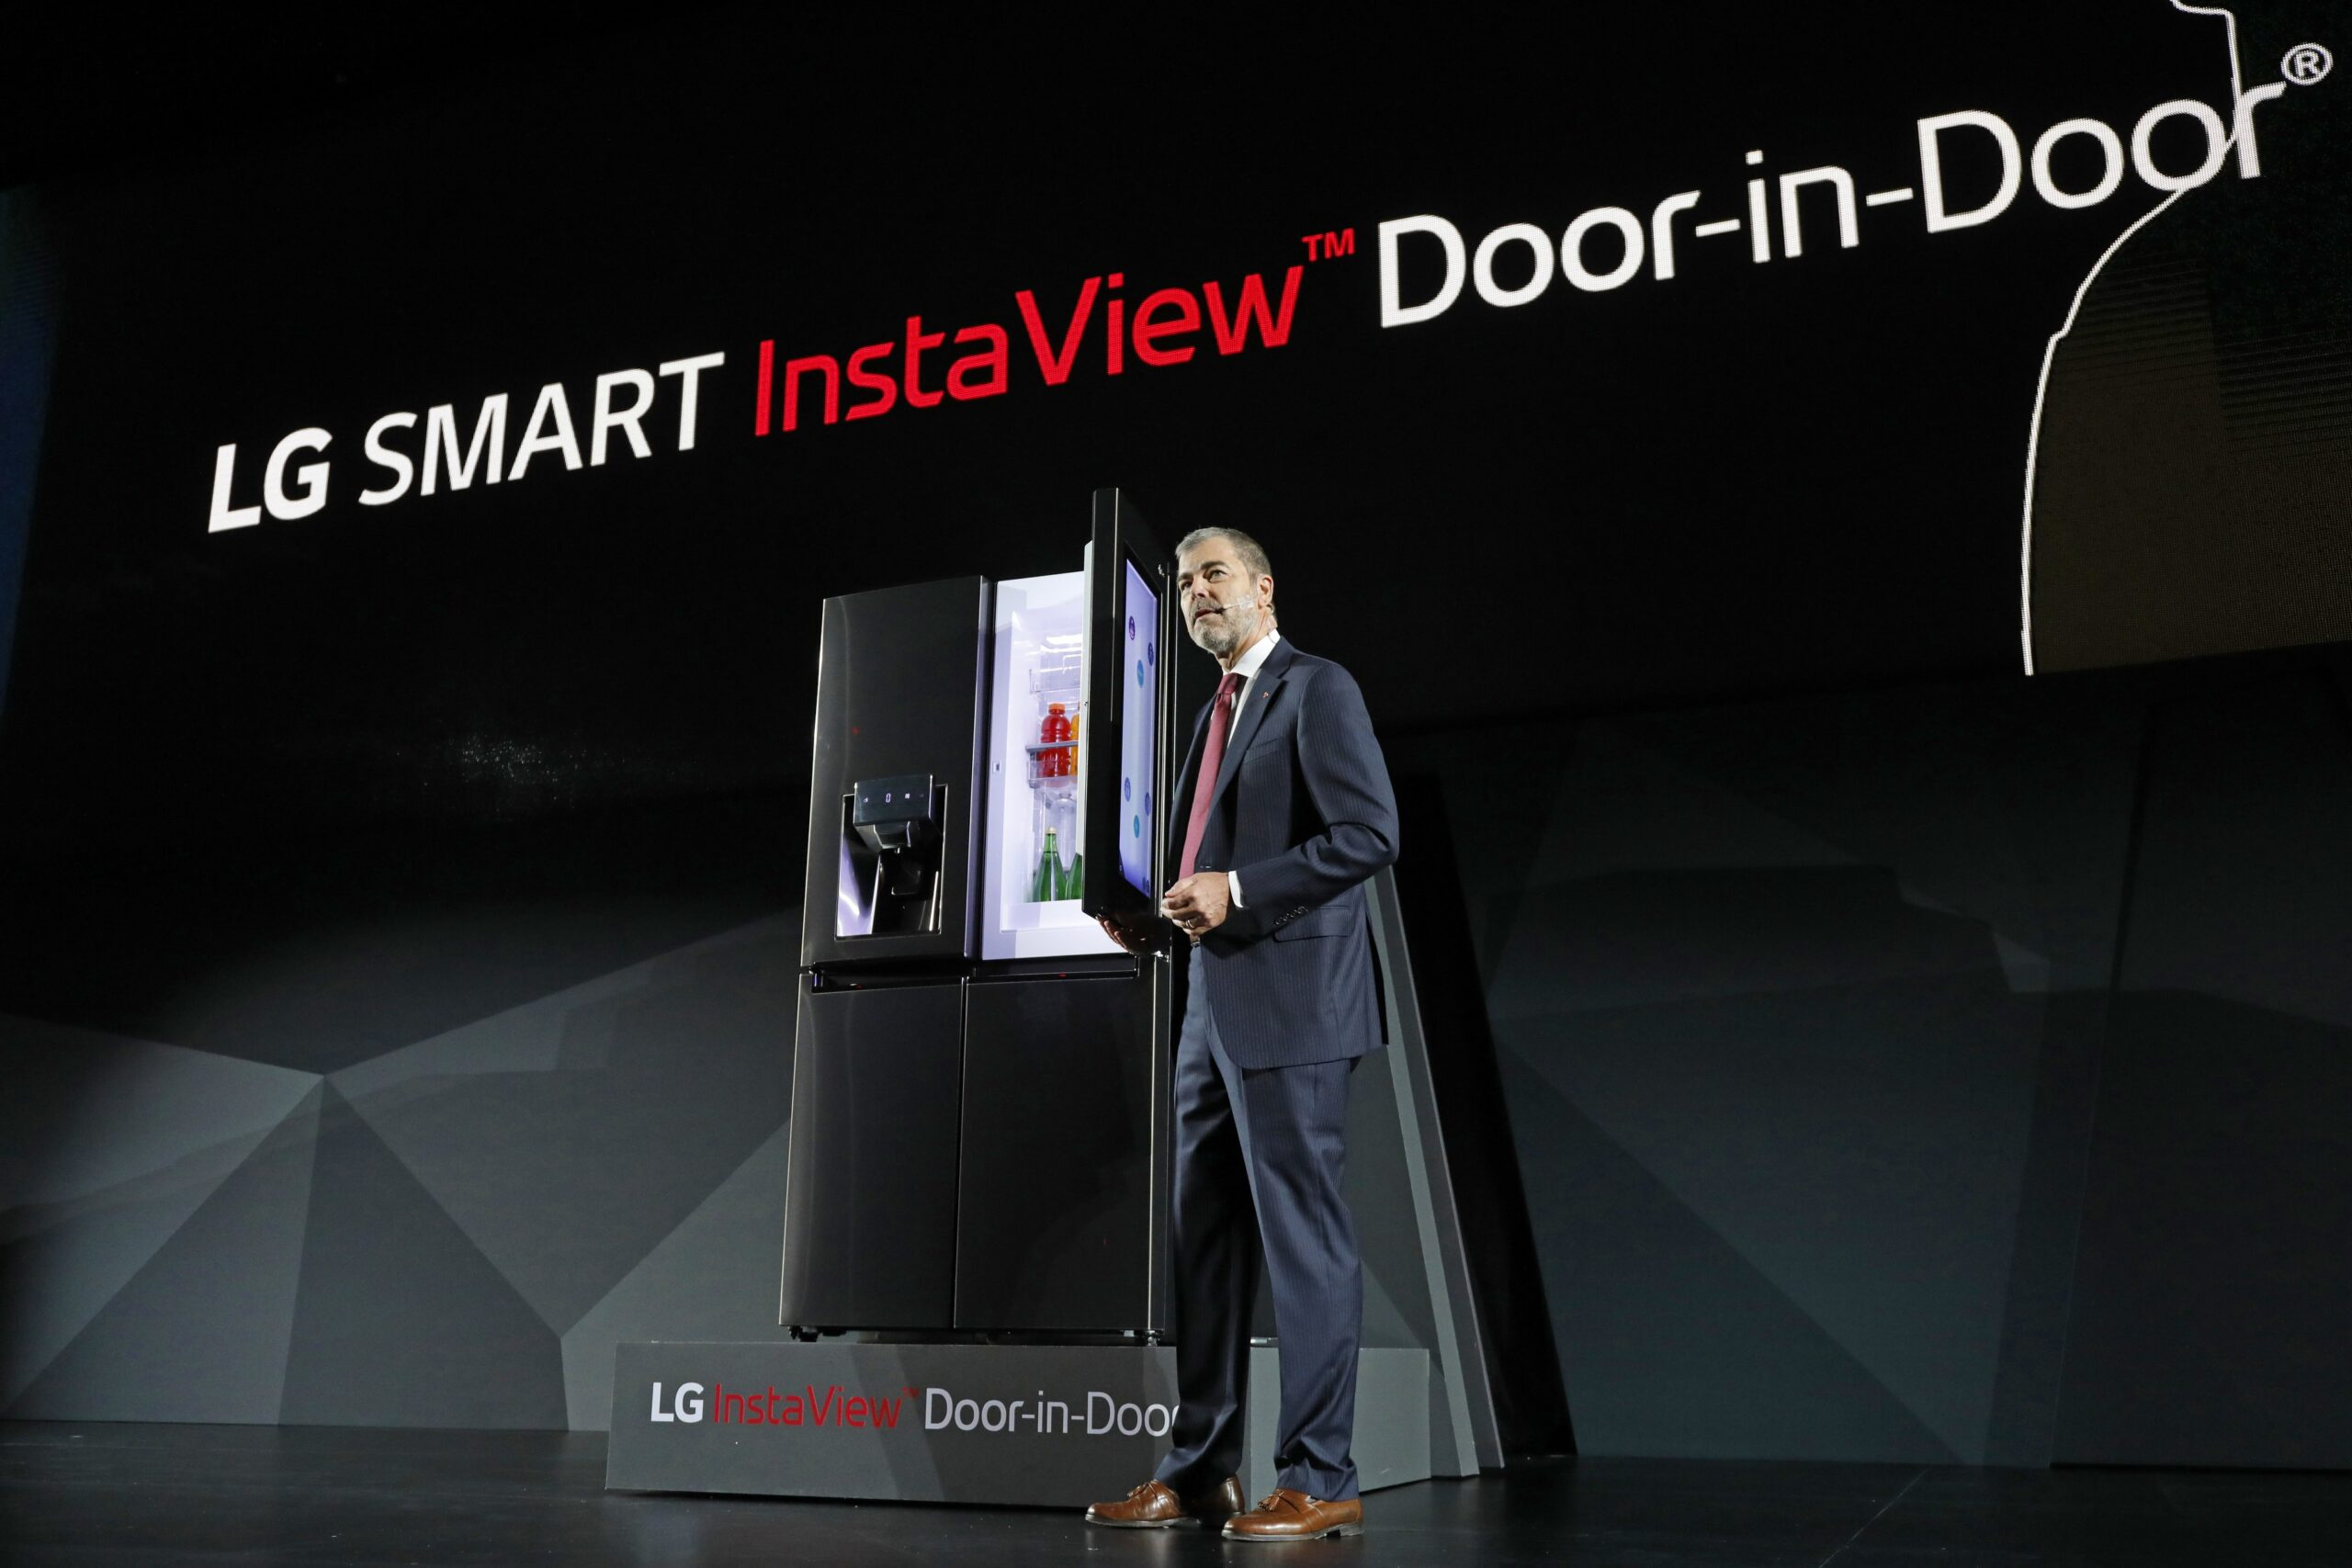 David VanderWaal, Senior Vice President, Marketing, LG Electronics opens the door of LG's InstaView Door-in-Door refrigerator at its CES 2017 Press Conference.